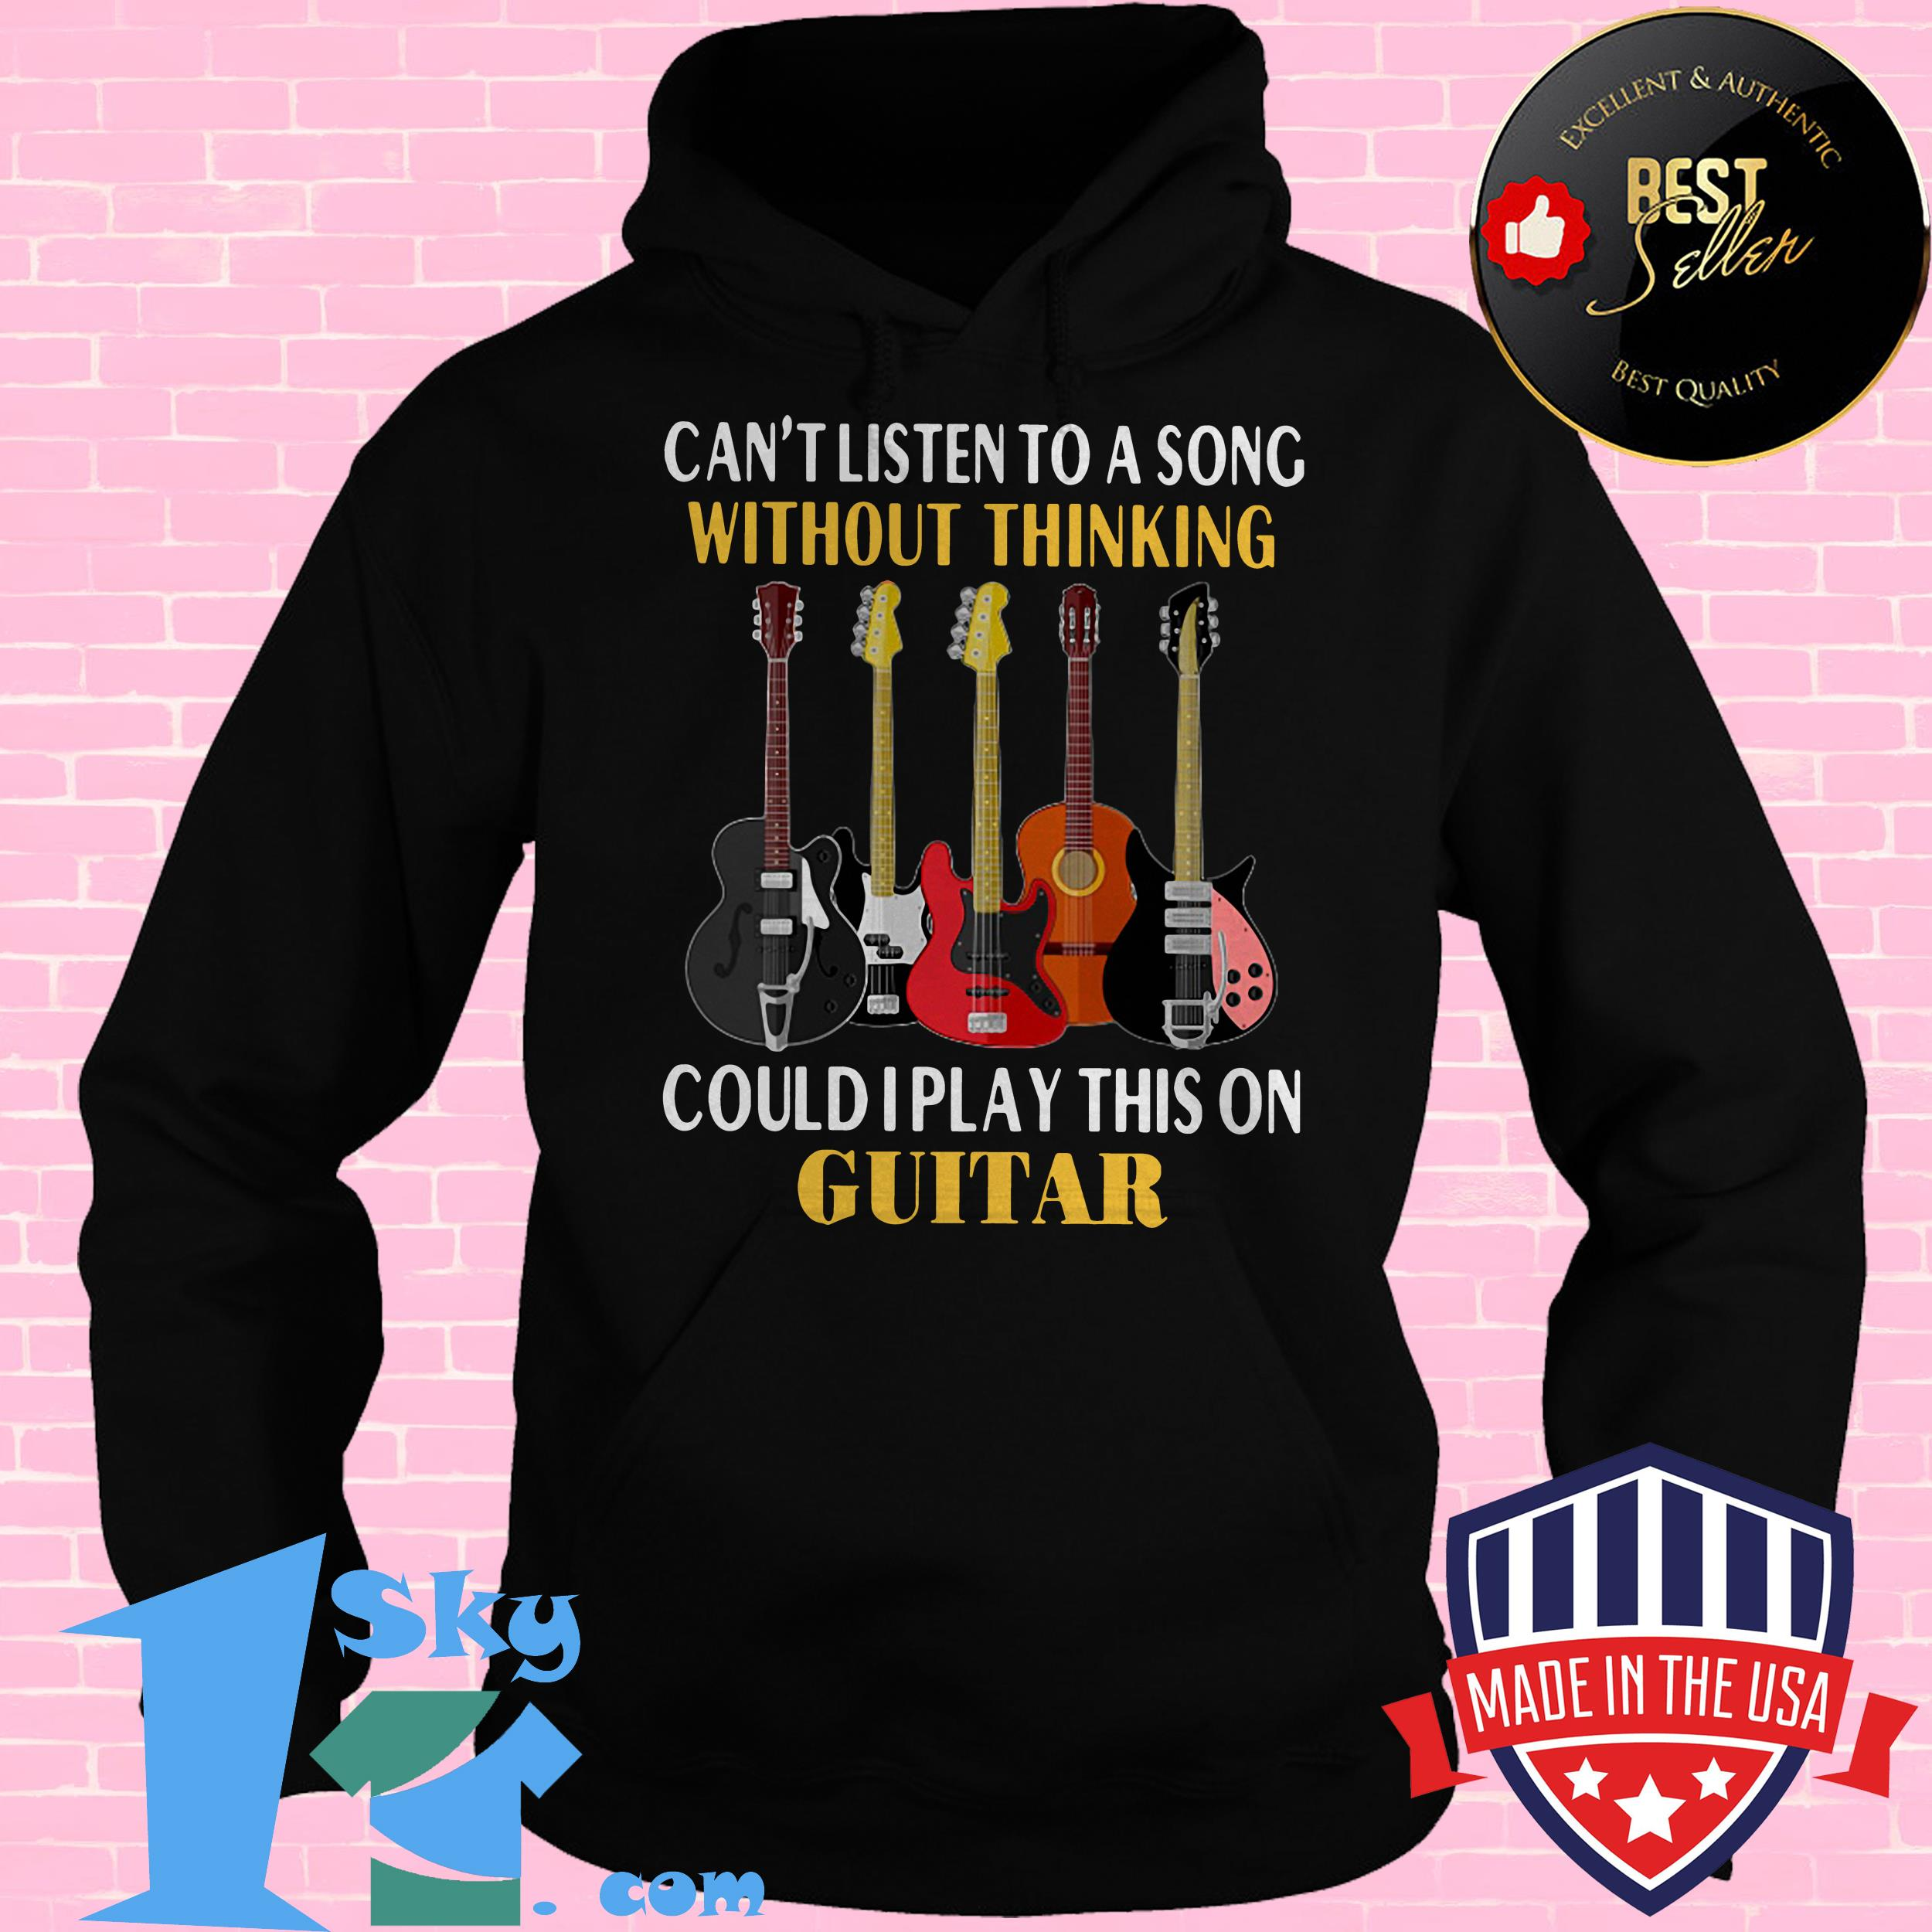 cant listen to a song without thinking could i play this on guitar hoodie - Can't Listen To A Song Without Thinking Could I Play This On Guitar shirt